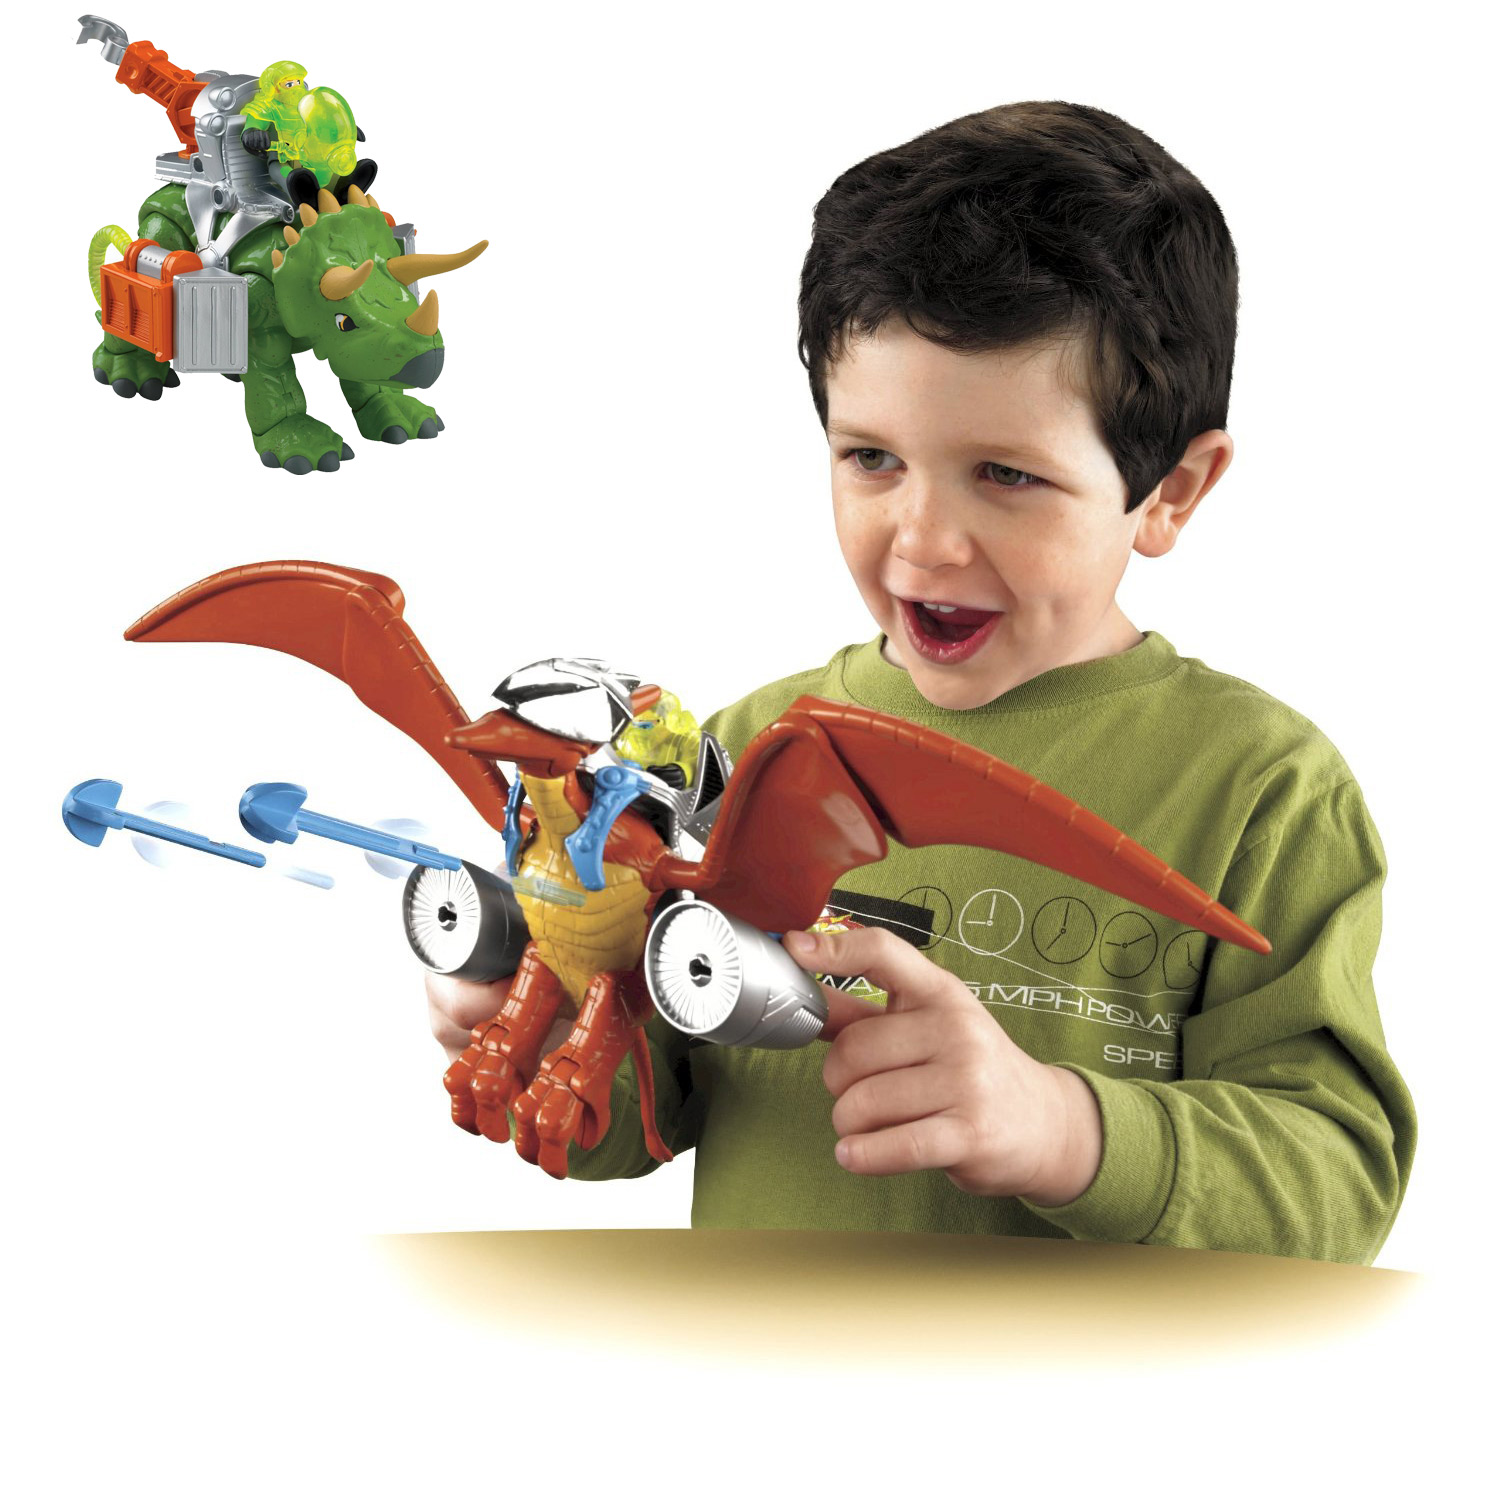 Dino Toys For Boys : Kids boys fisher price imaginext dinosaur toy includes dvd